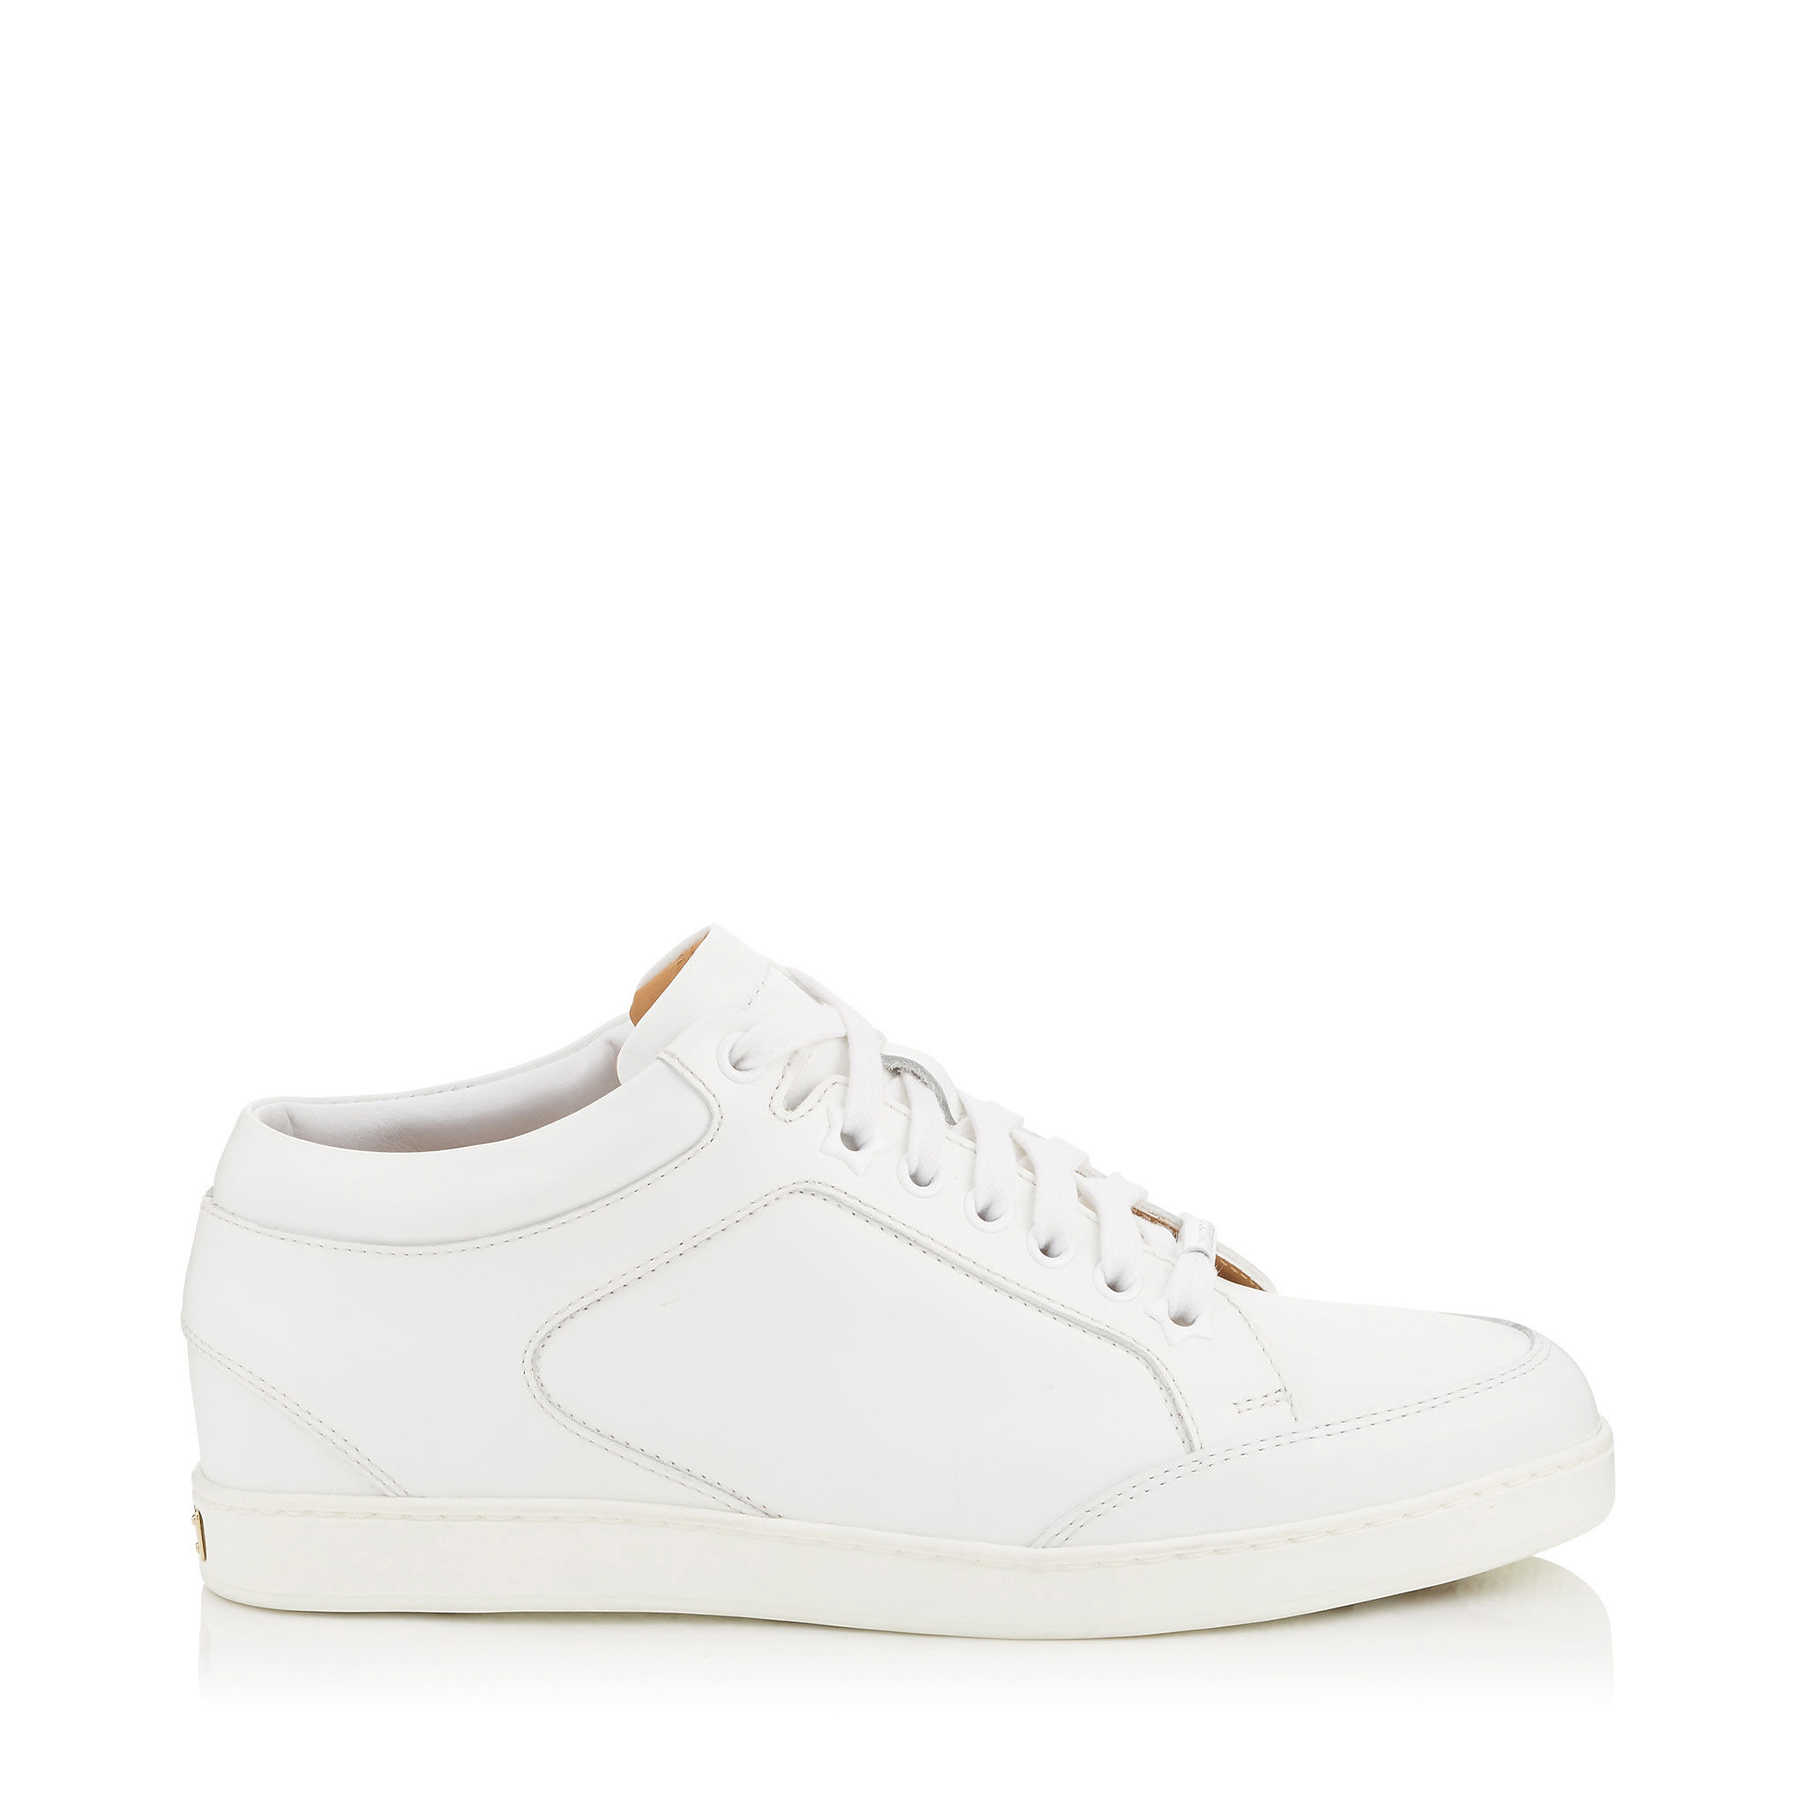 MIAMI White Calf Leather Low Top Trainers